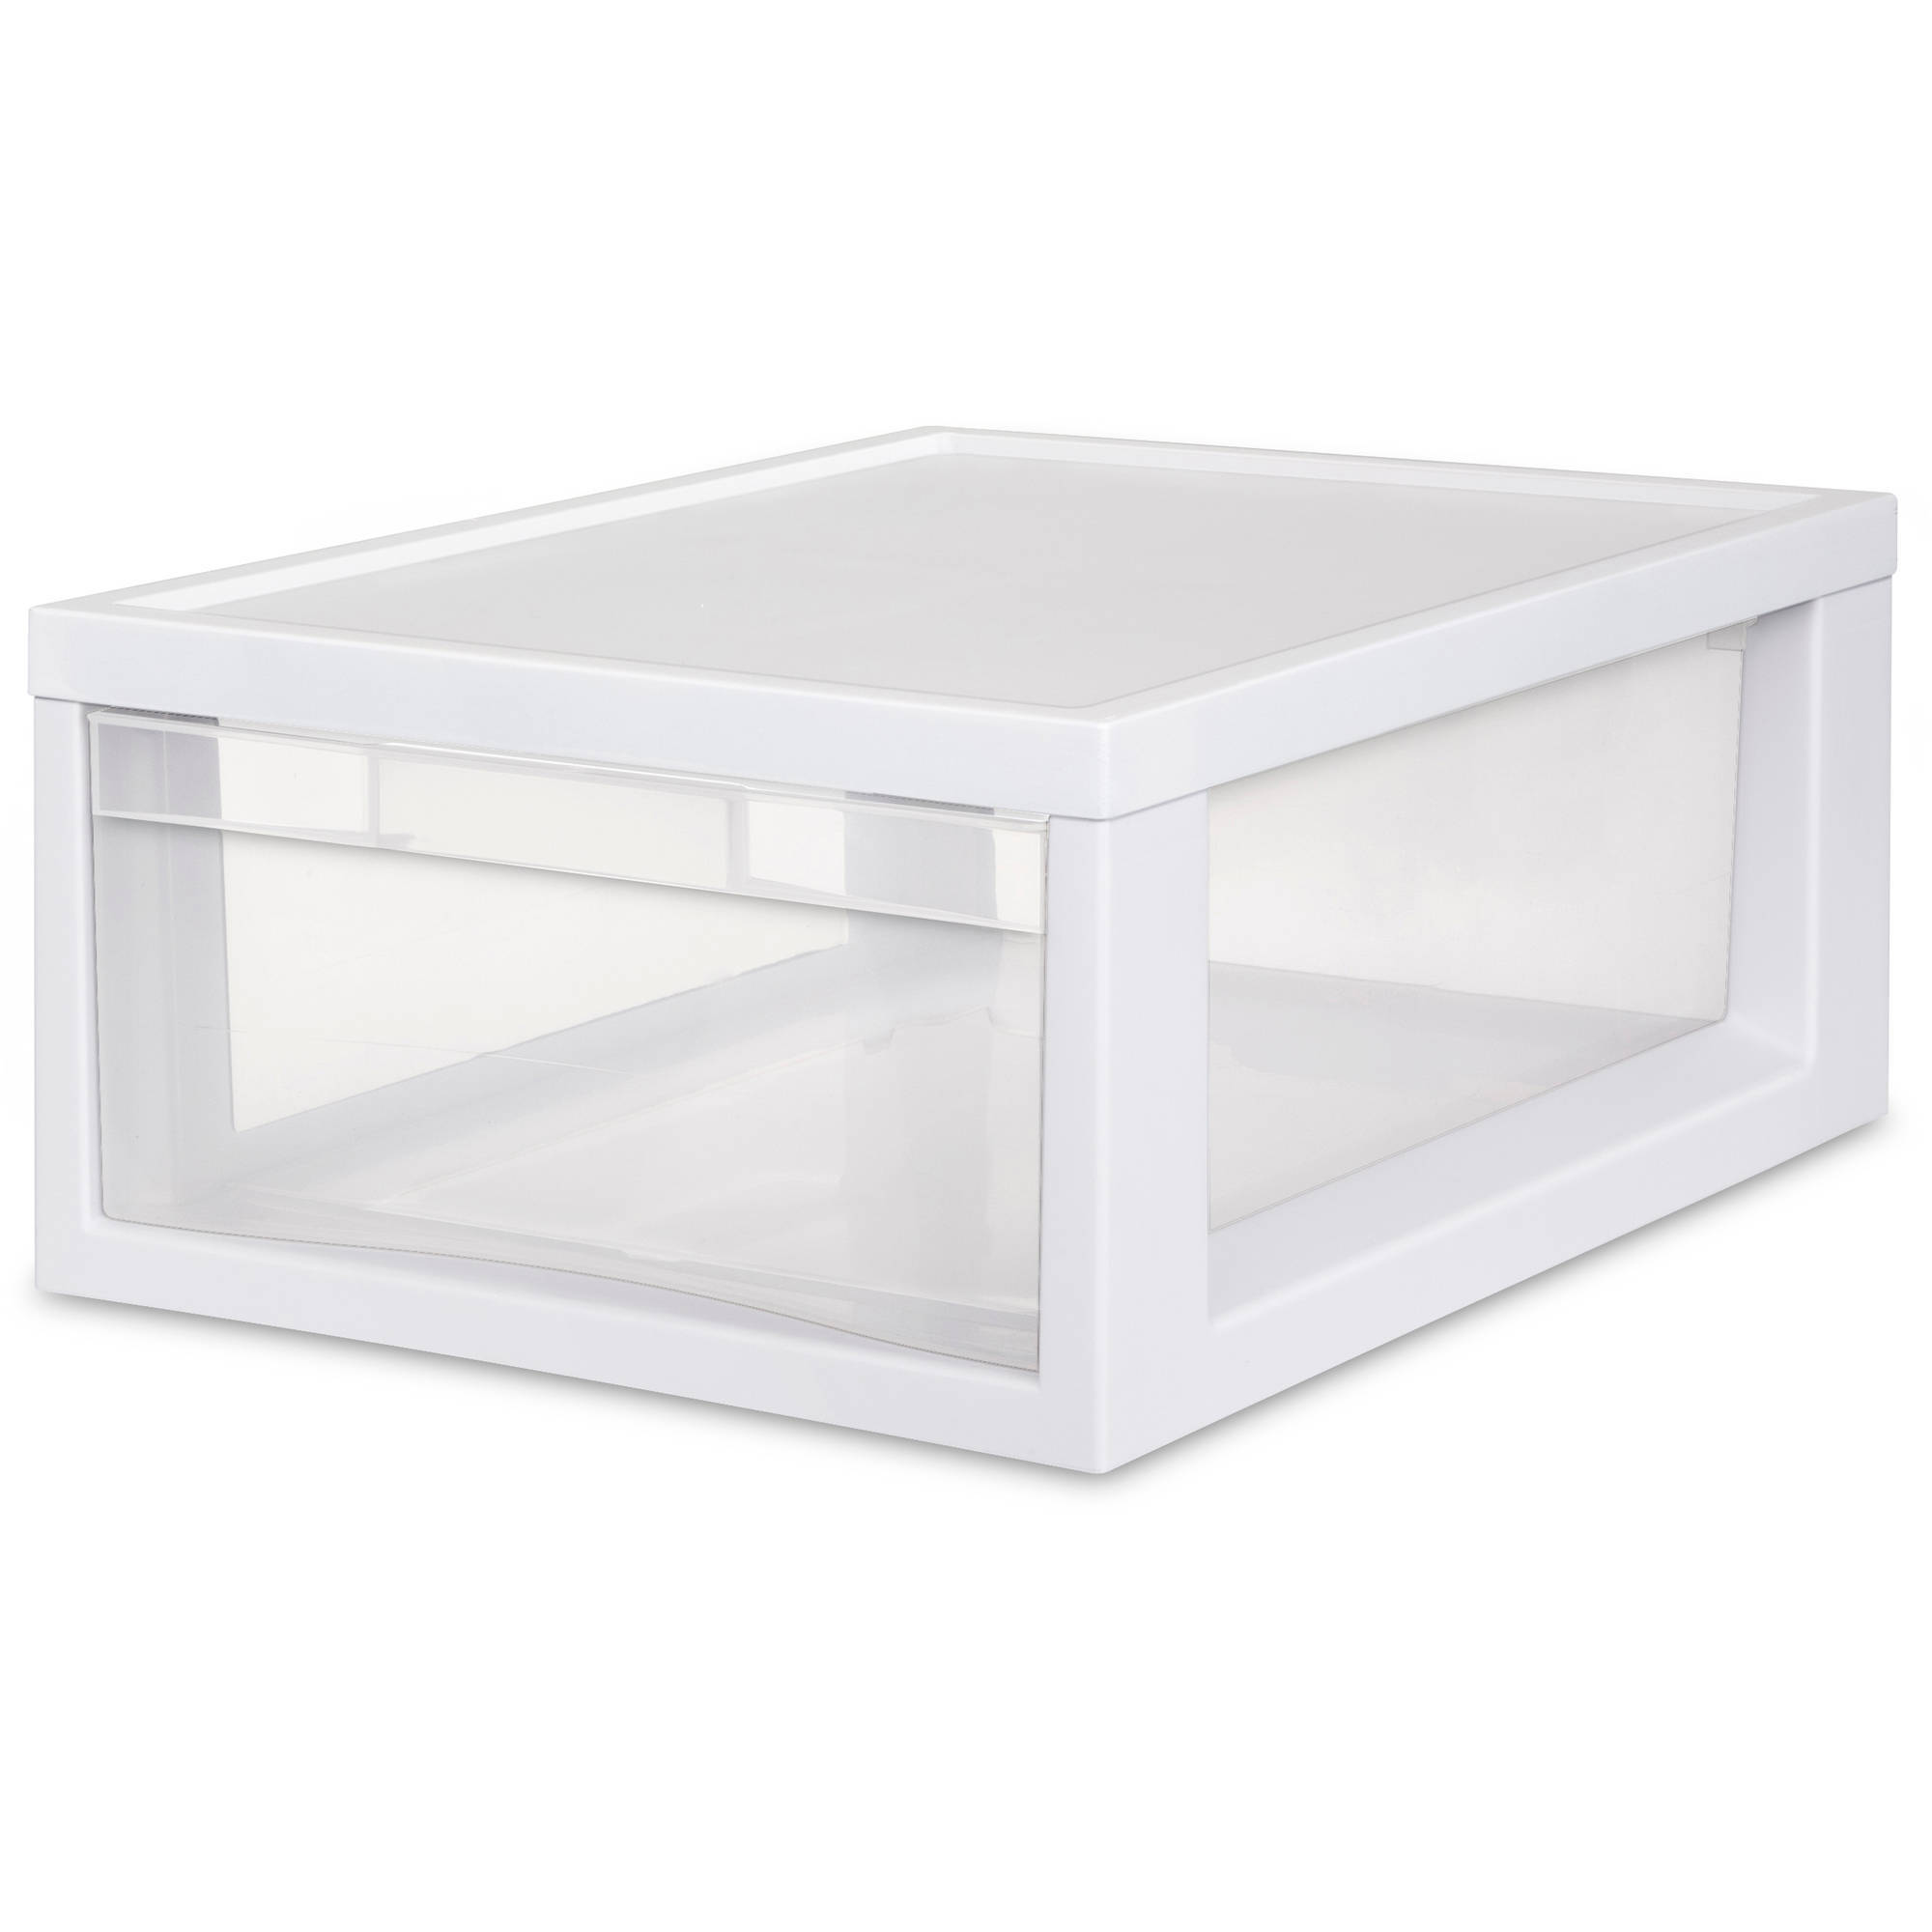 Sterilite Medium Modular Drawers- White (Available in Cas...